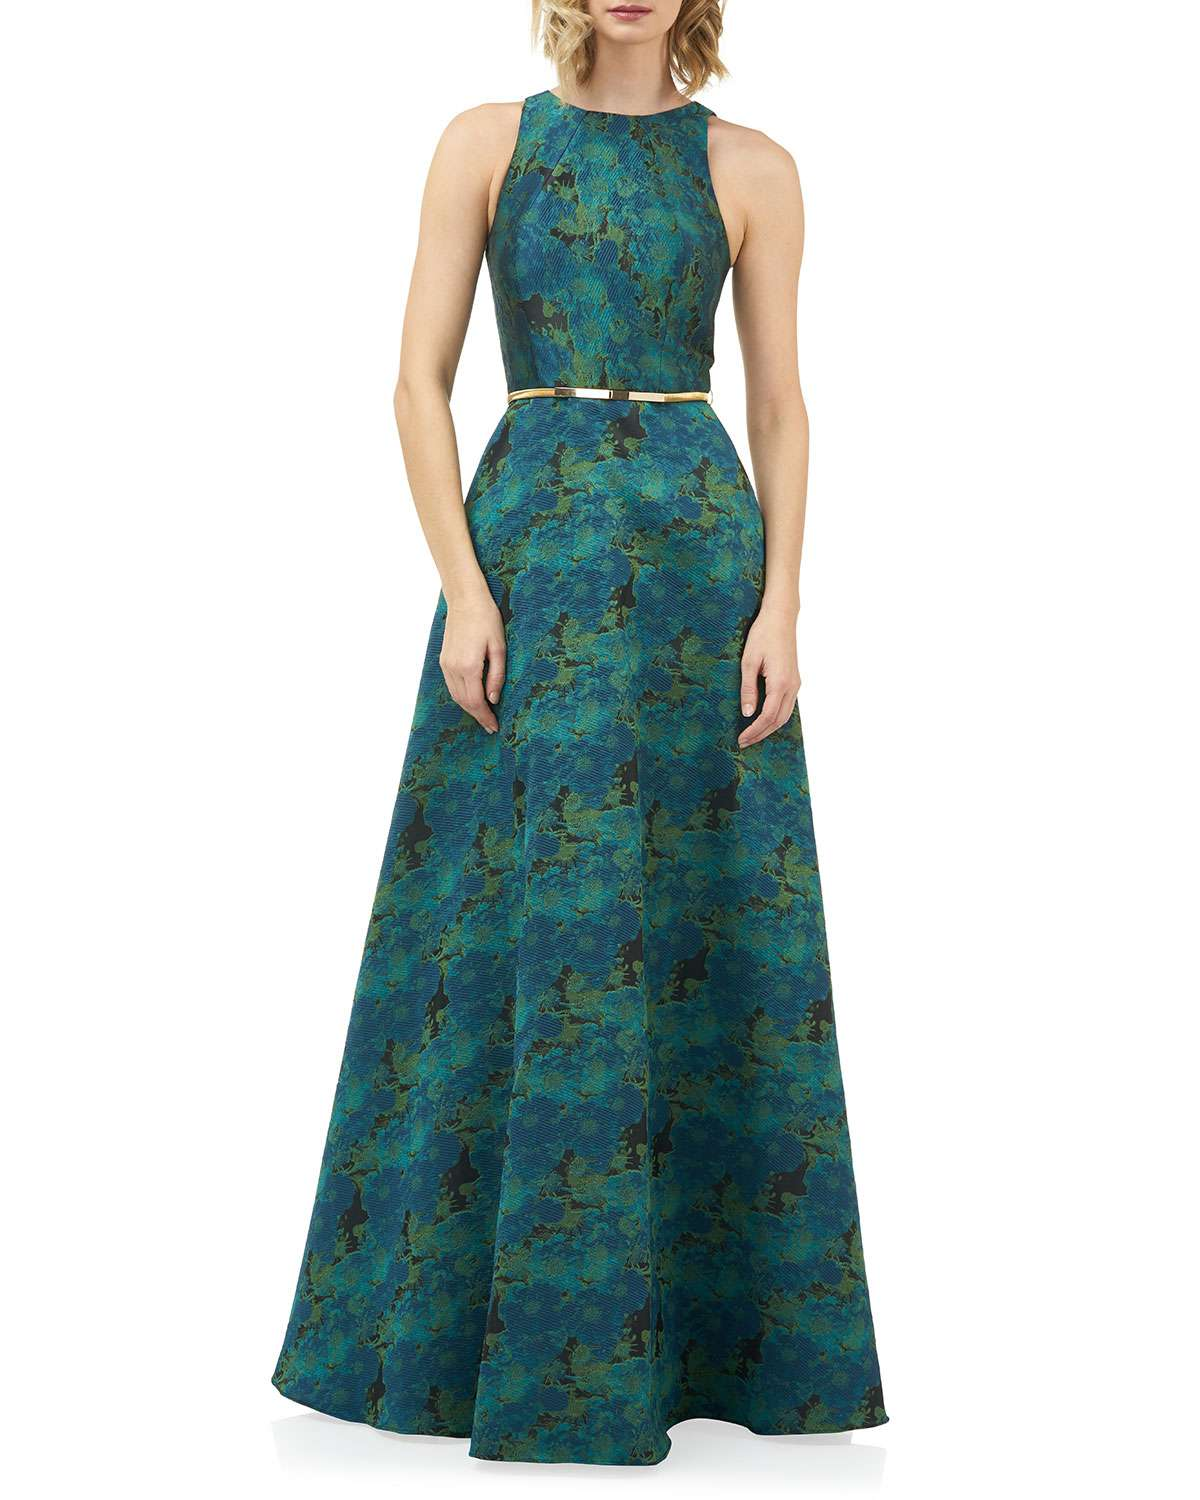 Charlotte Jewel-Neck Sleeveless Jacquard Gown with Belt